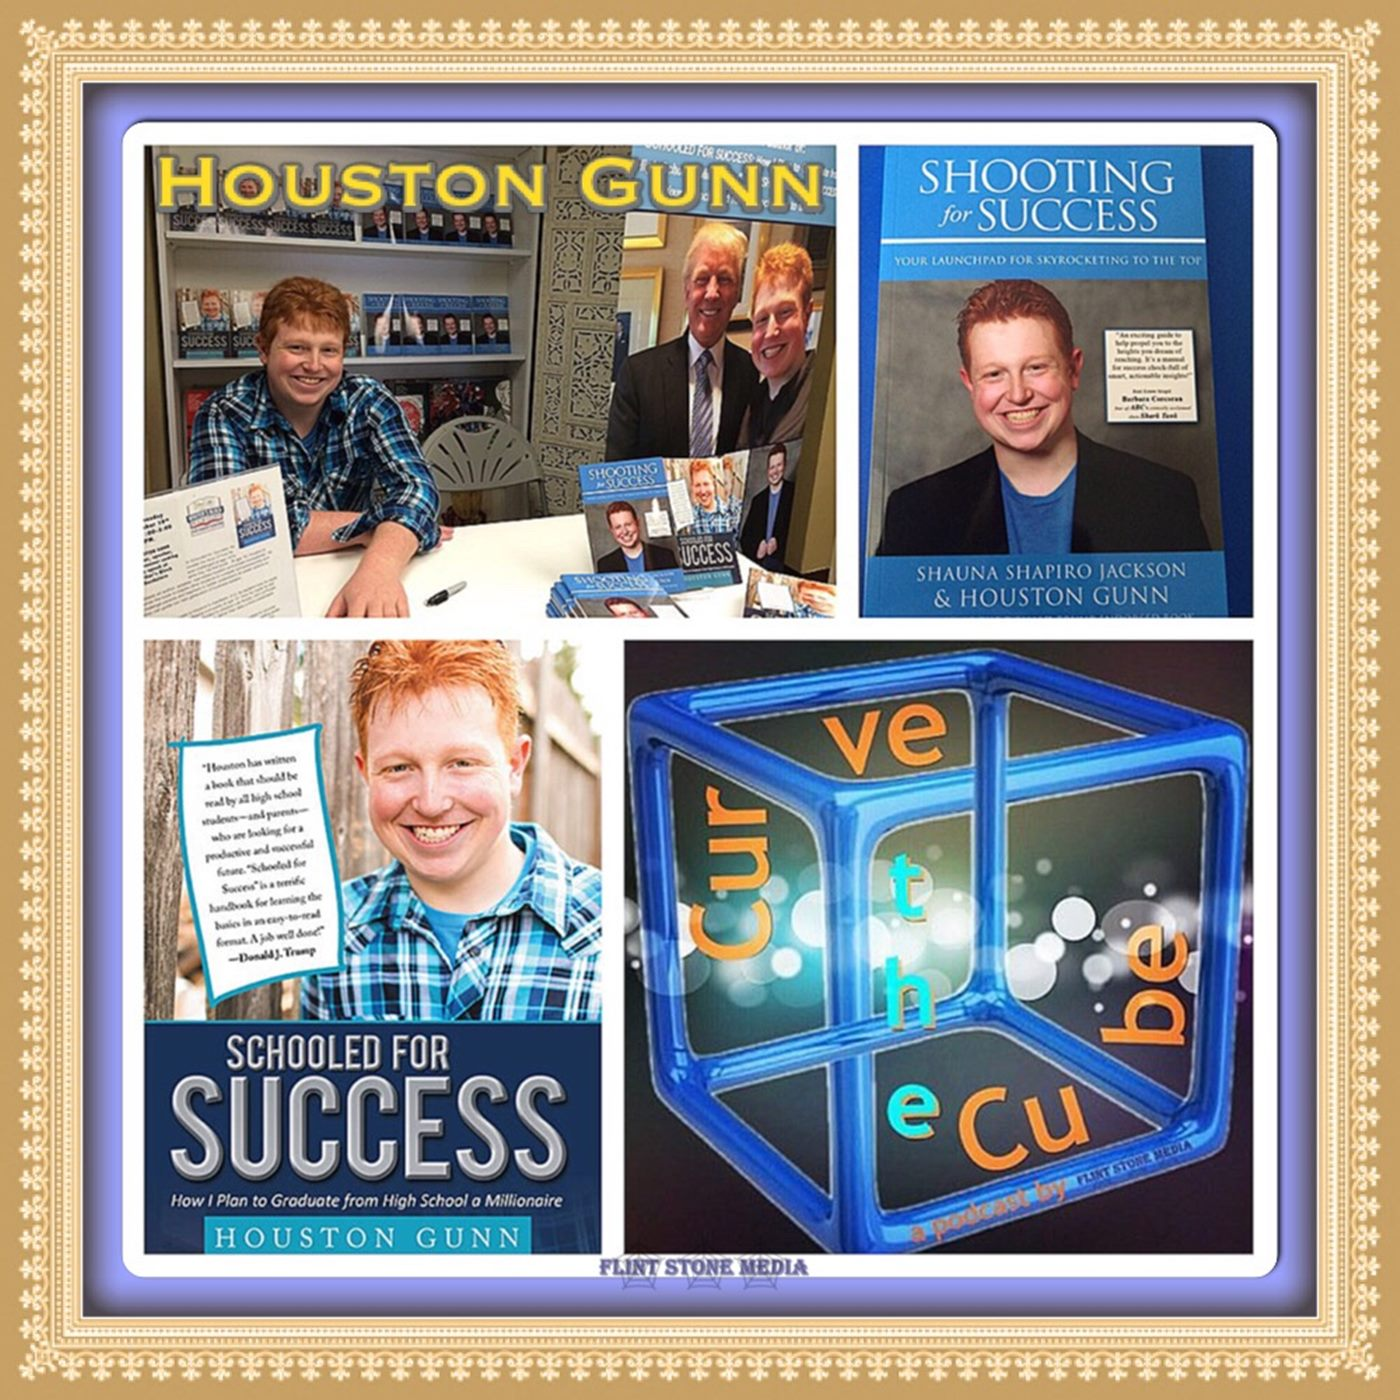 #5 – CTCKids – AUTHOR & ENTREPRENEUR – Houston Gunn - 2014-11-25